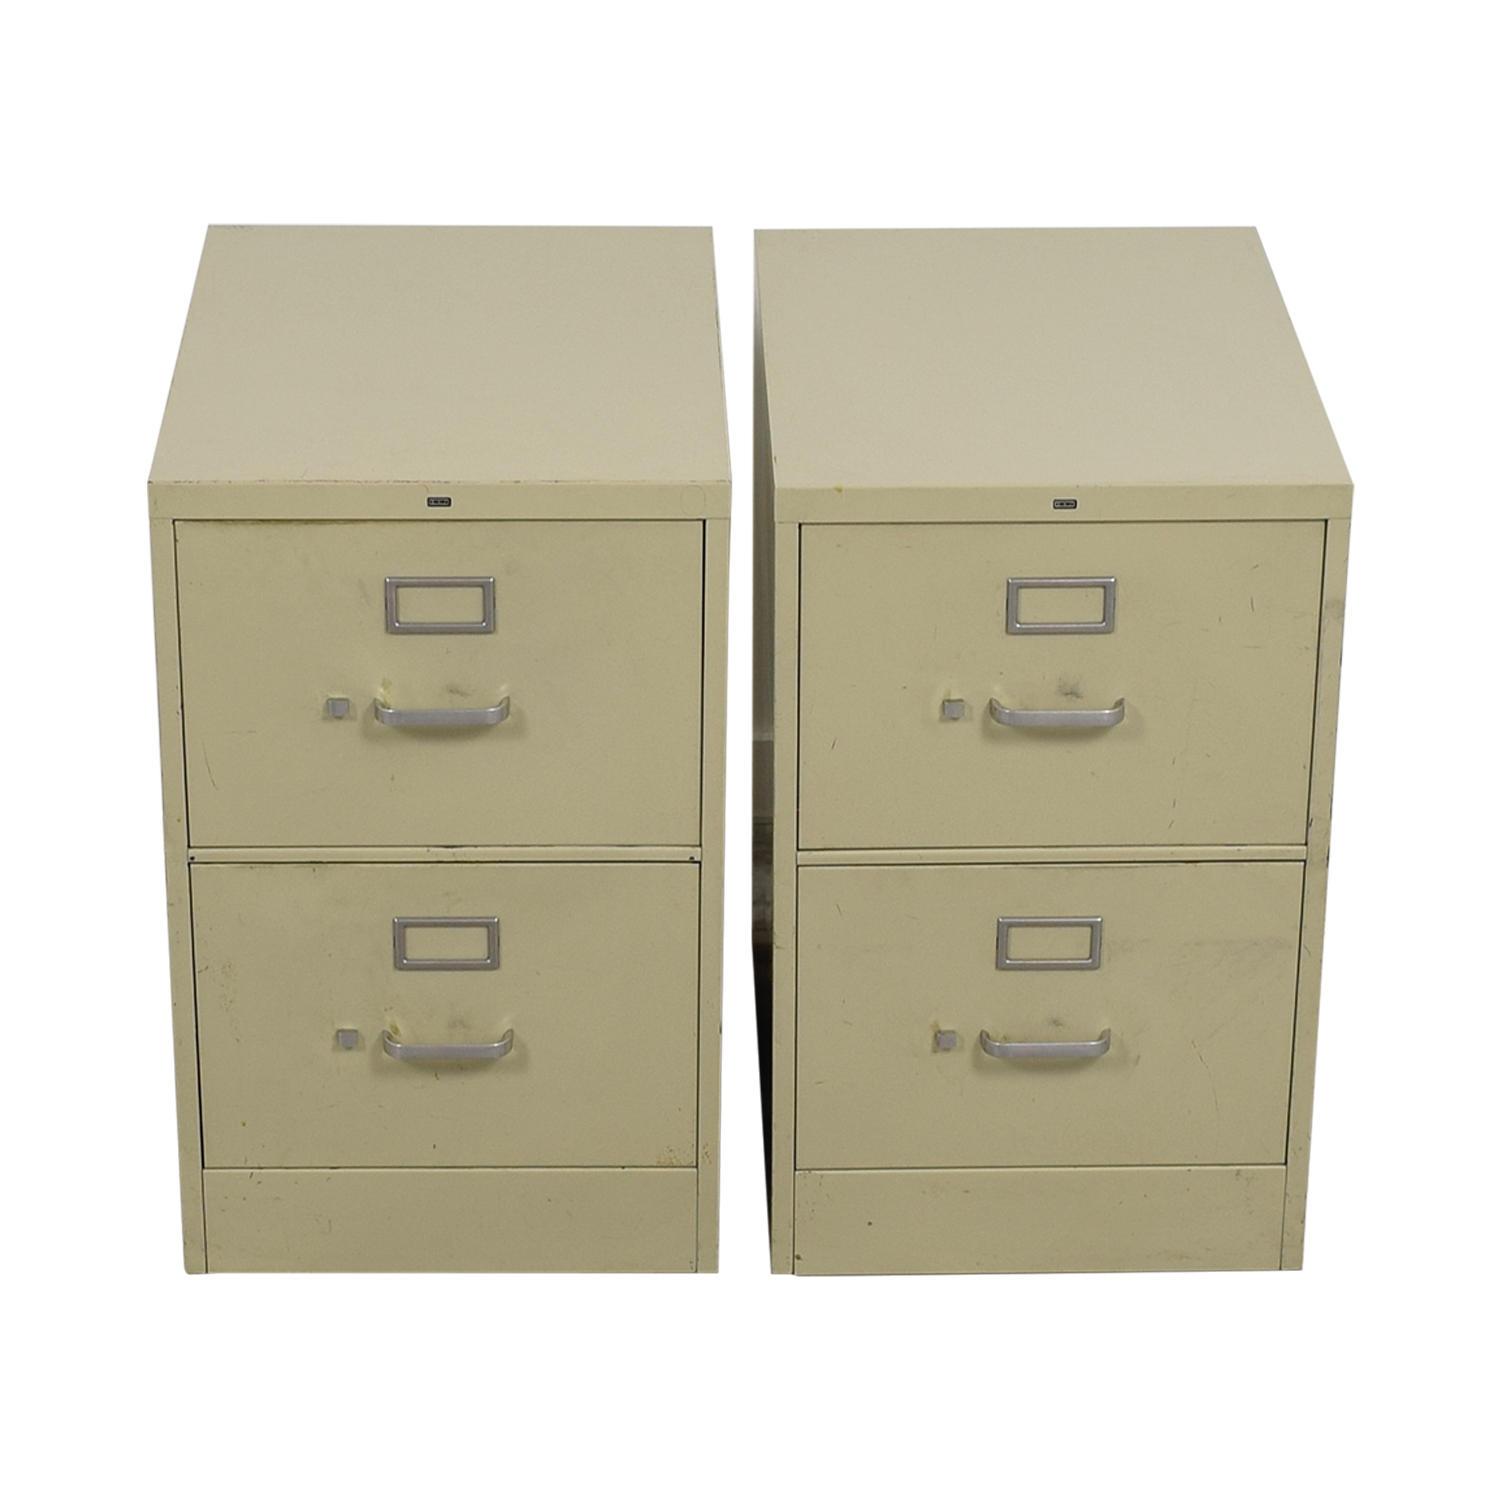 Two-Drawer Grey Metal File Cabinets nj